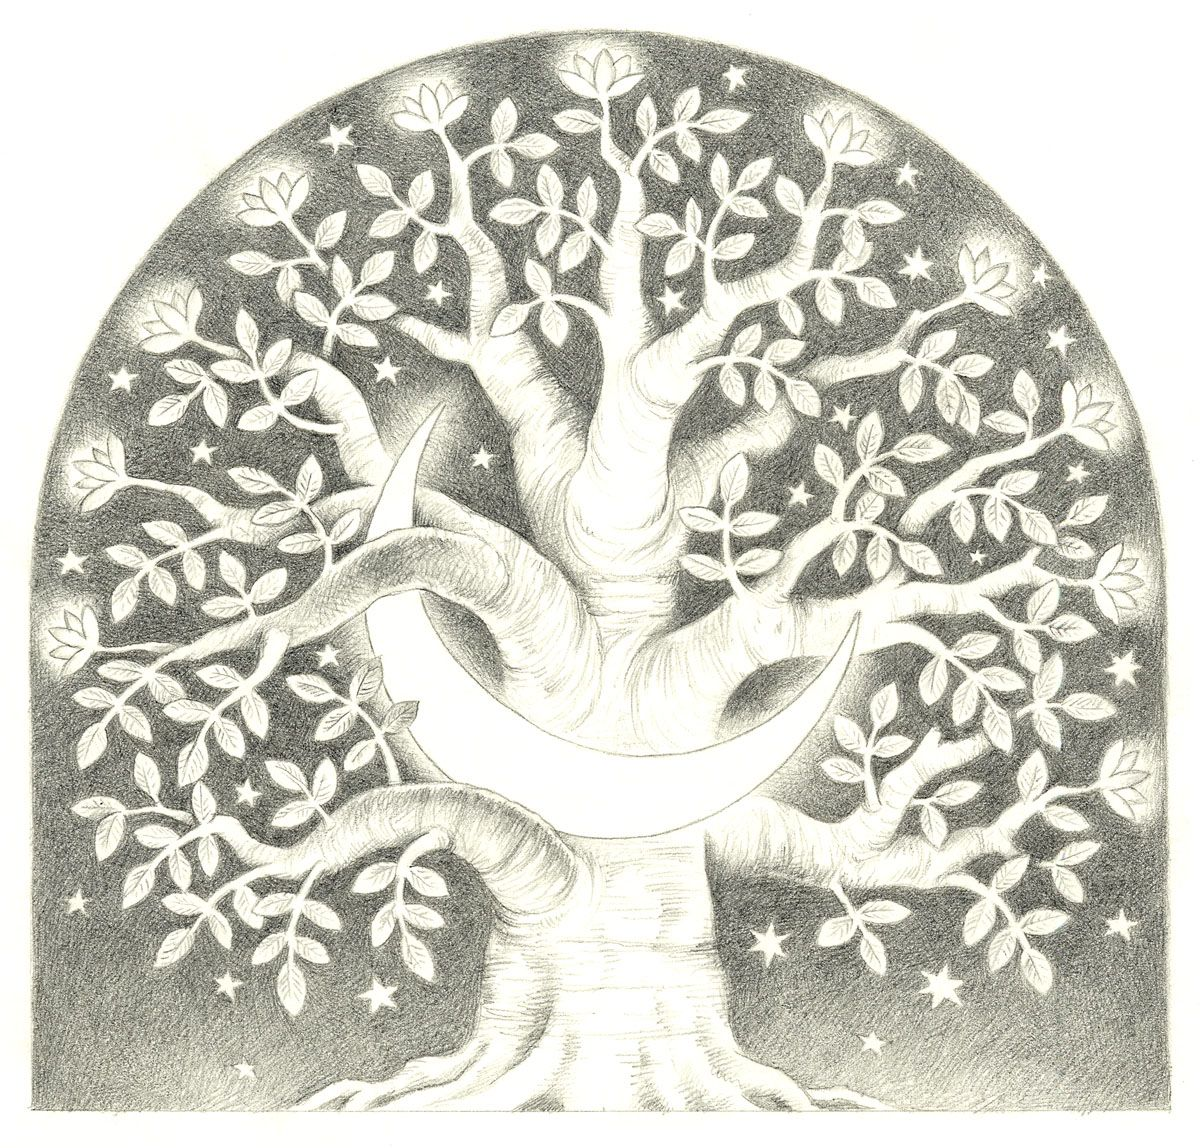 A beautiful Christmas Tree Image in a Scandinavian style. ✯This is not a free image✯ Moonwood by Hunter Brown.